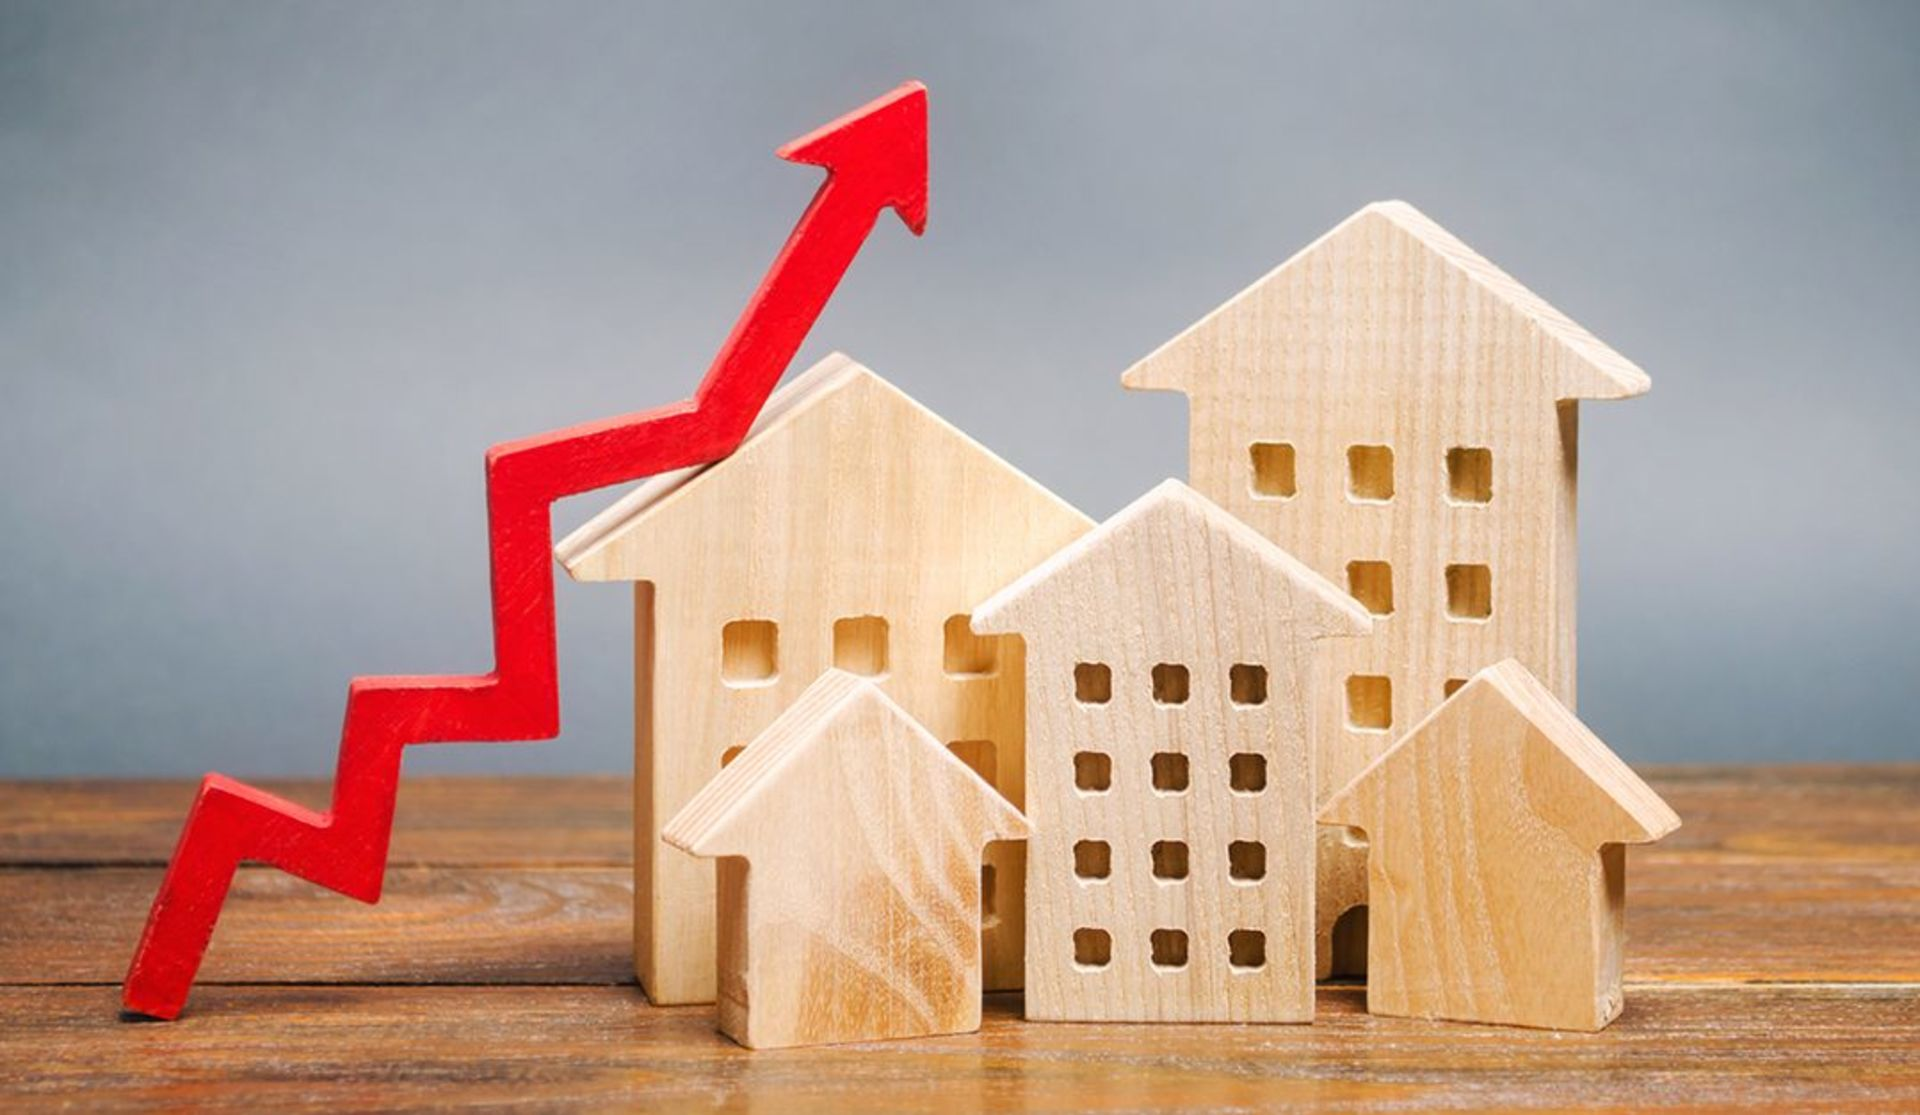 Average New Home Price Now $14,000 Higher Due to Lumber